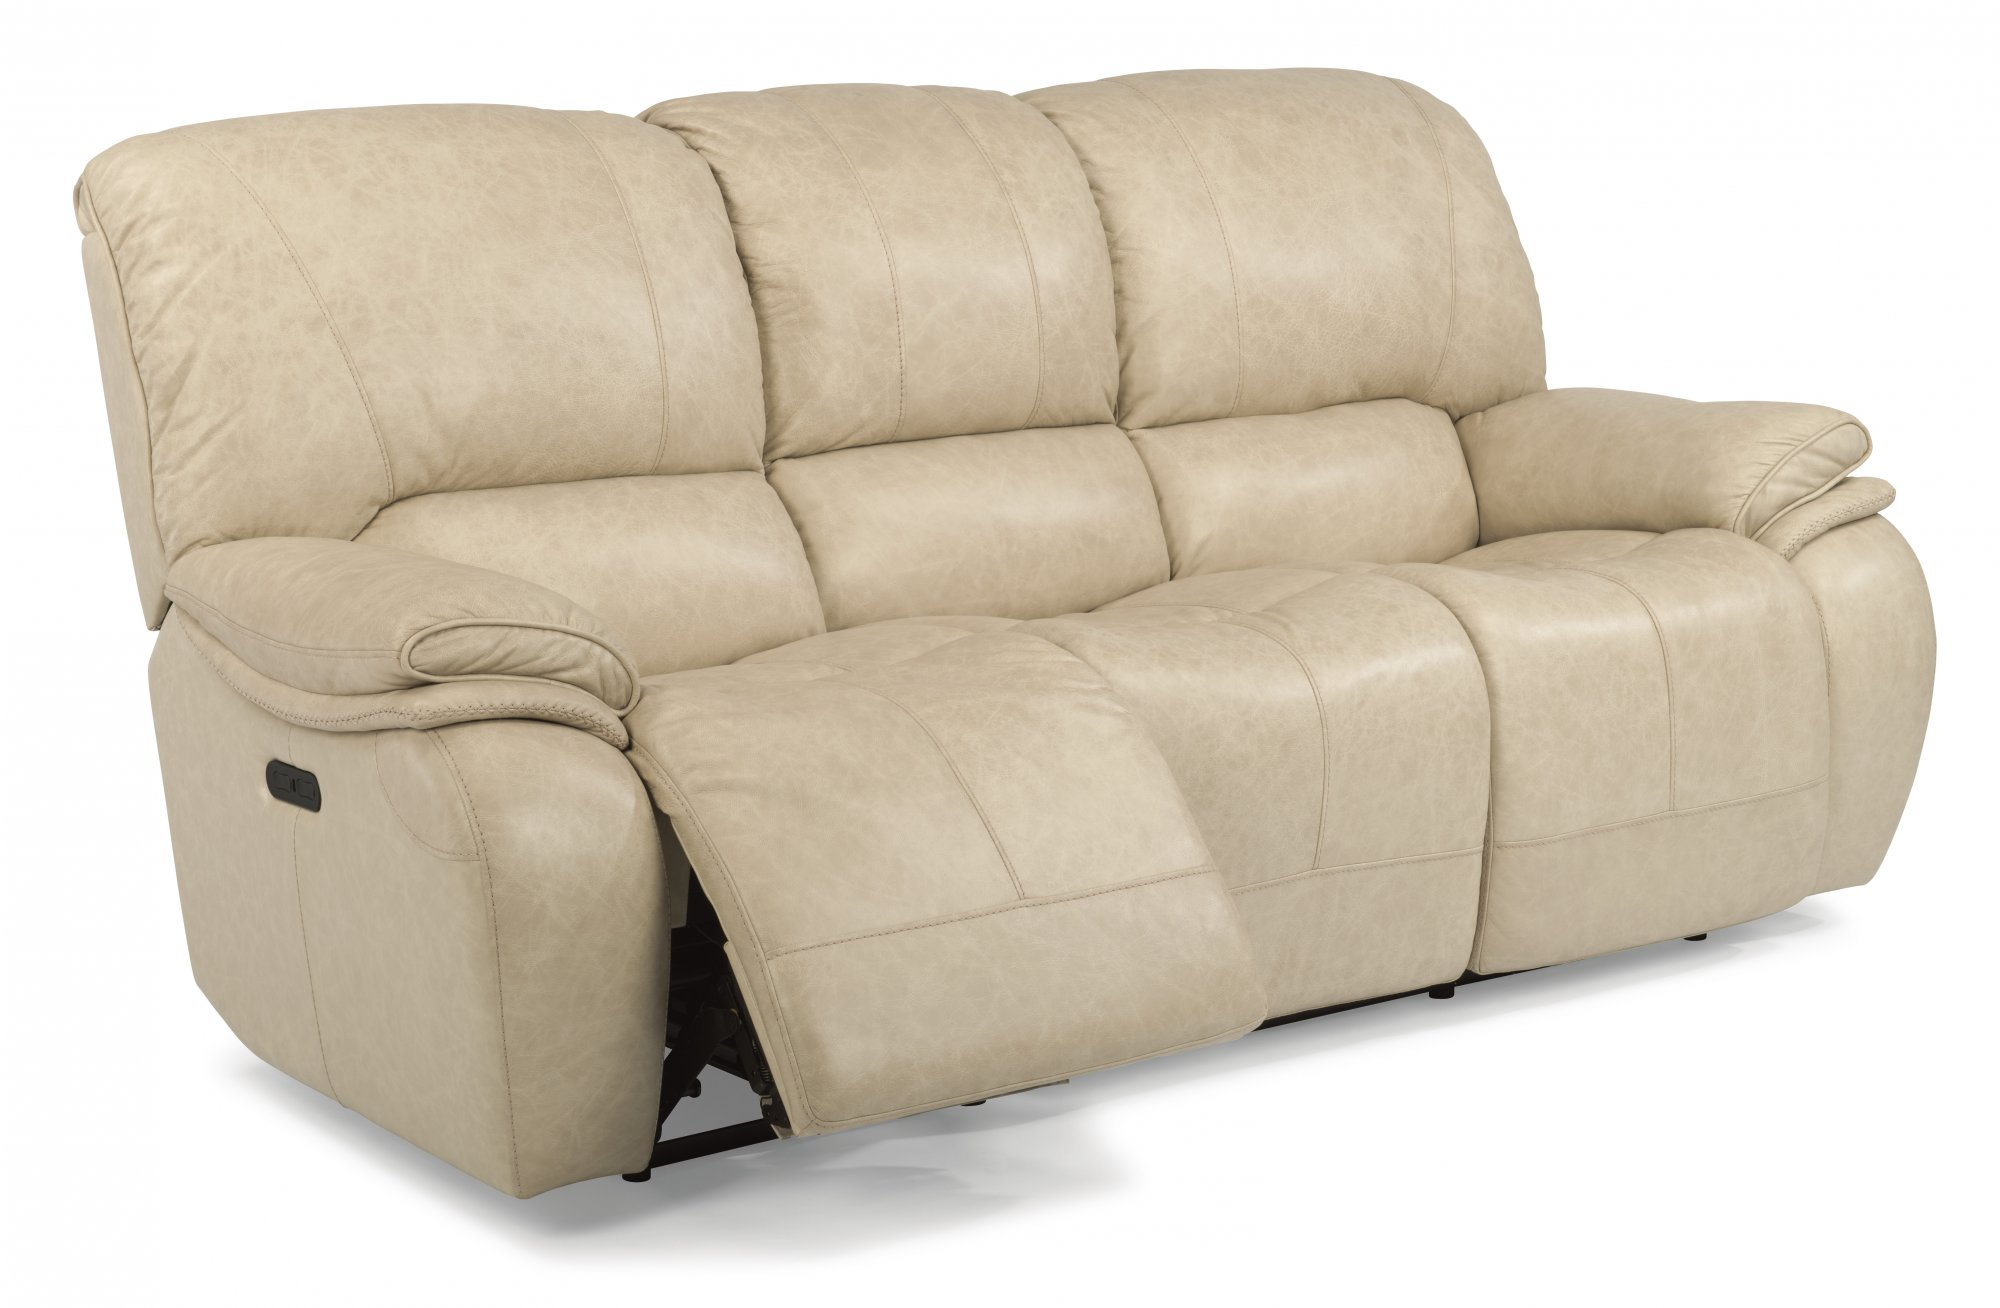 Reclining Chairs & Sofas.